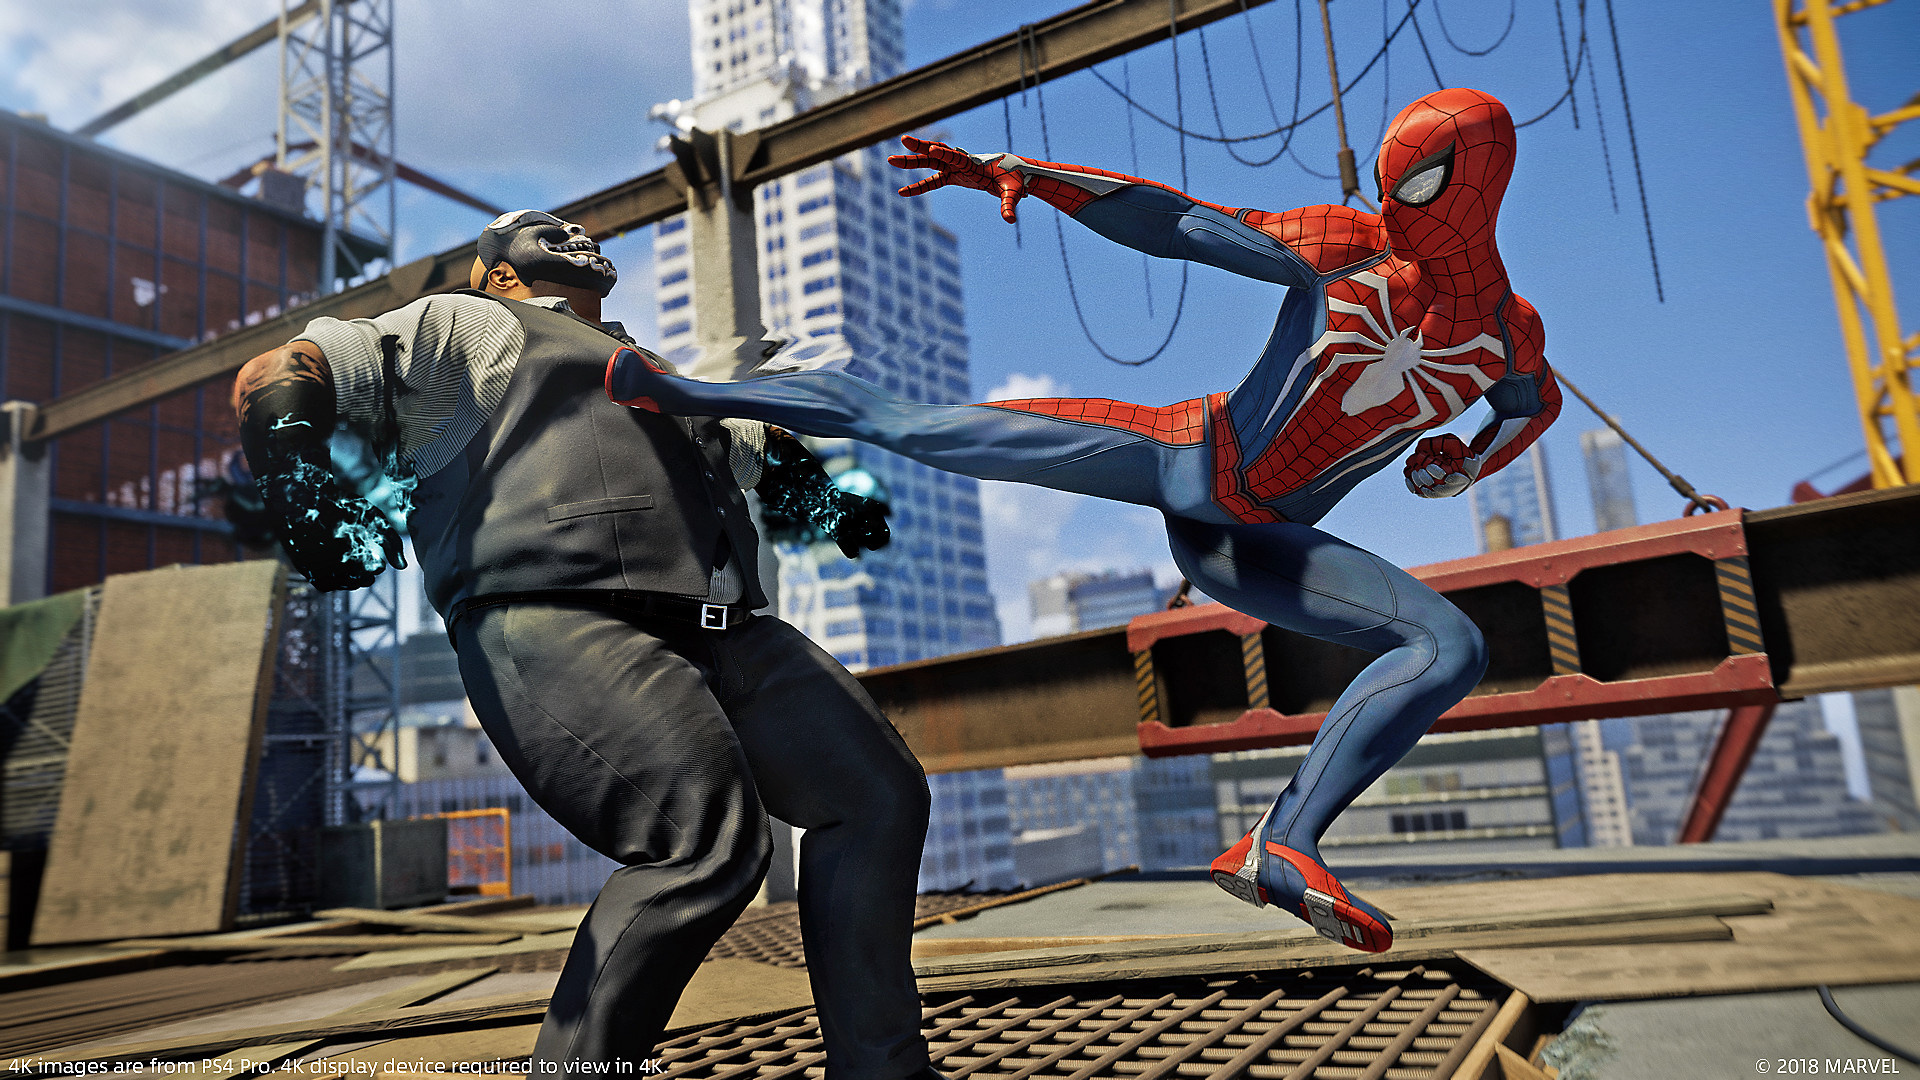 PS4 Exclusive Marvel's Spider-Man Is the Best-Selling